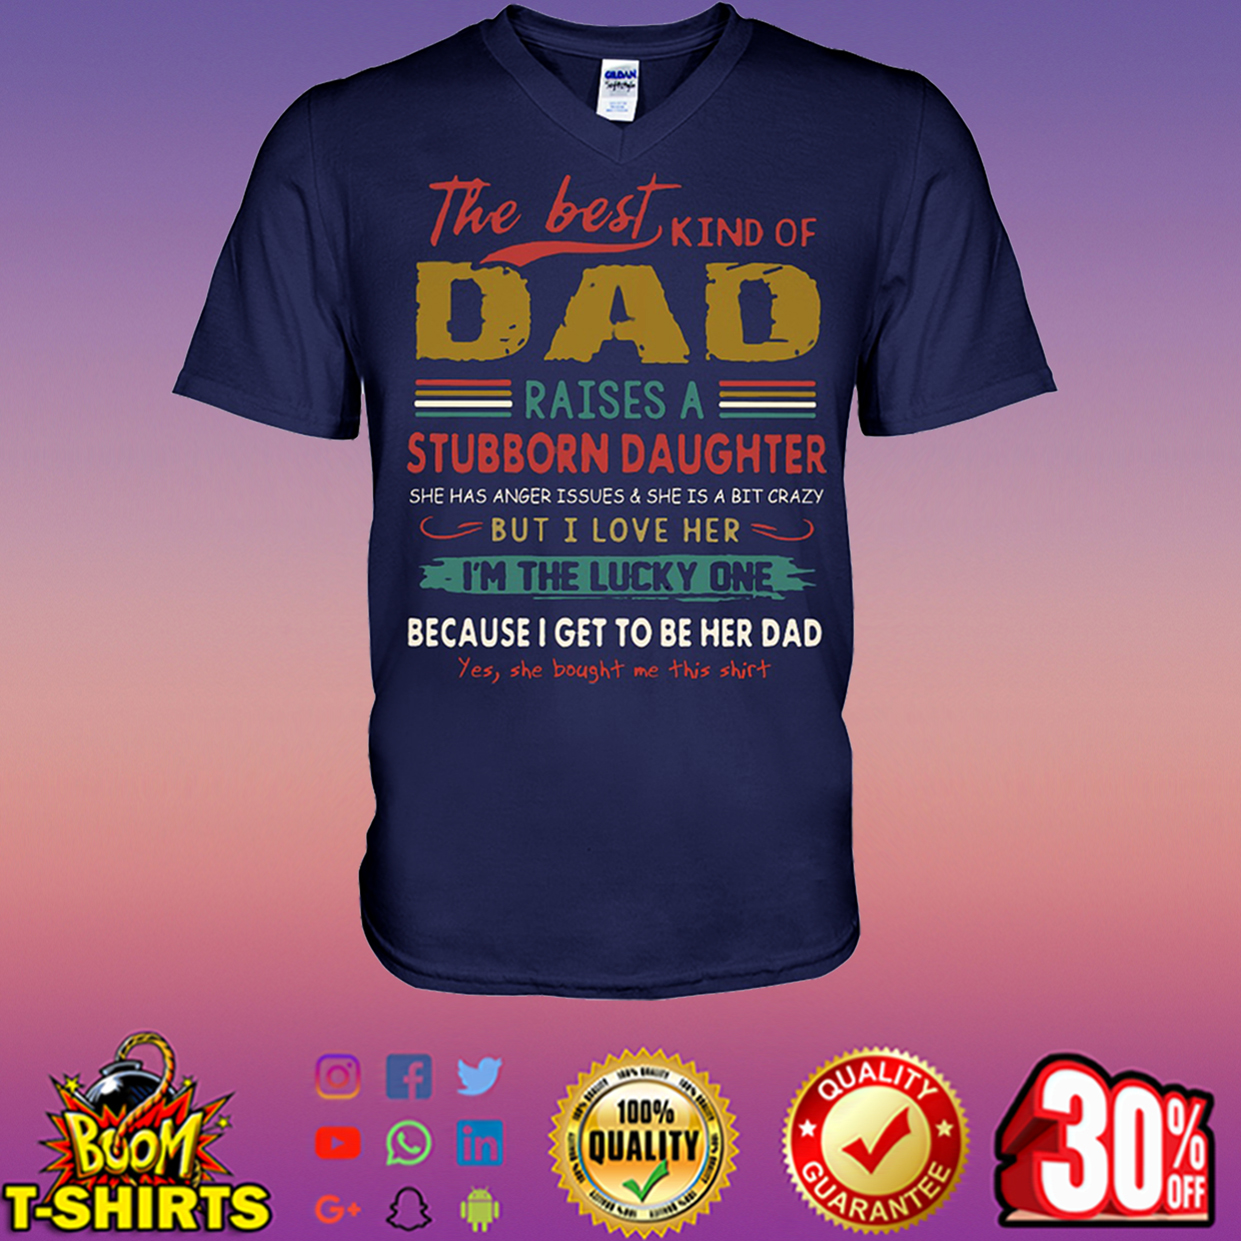 The best kind of Dad raises a stubborn daughter v-neck